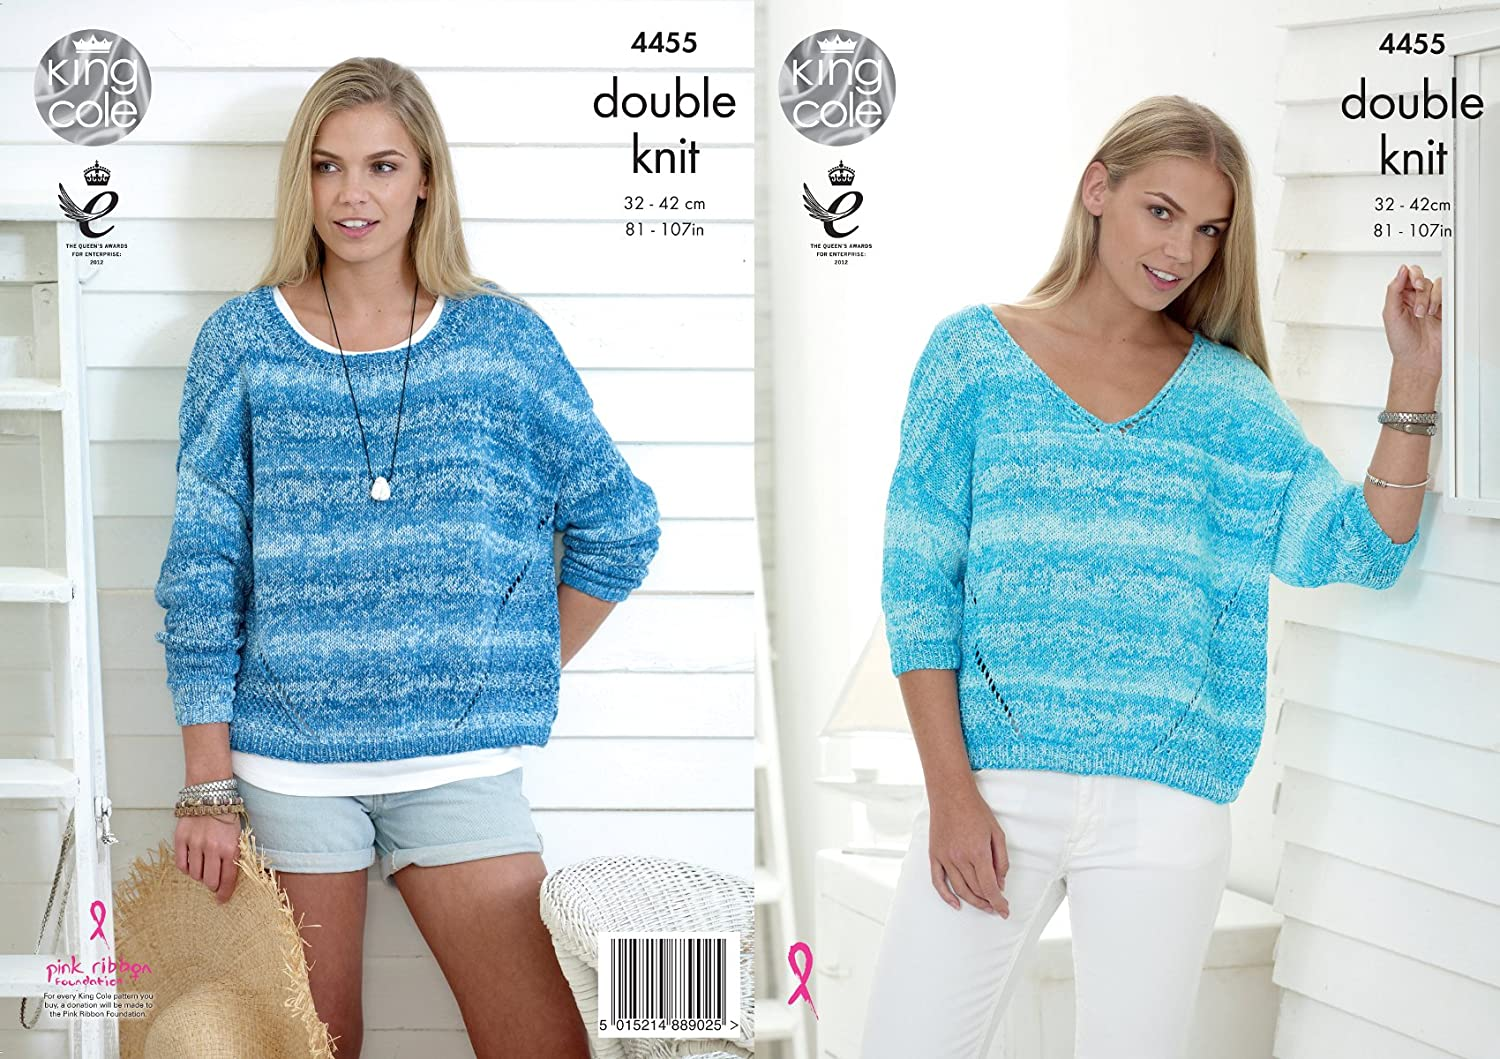 King Cole Ladies Double Knitting Pattern Womens Round or V Neck Baggy Sweaters Vogue DK (4455)